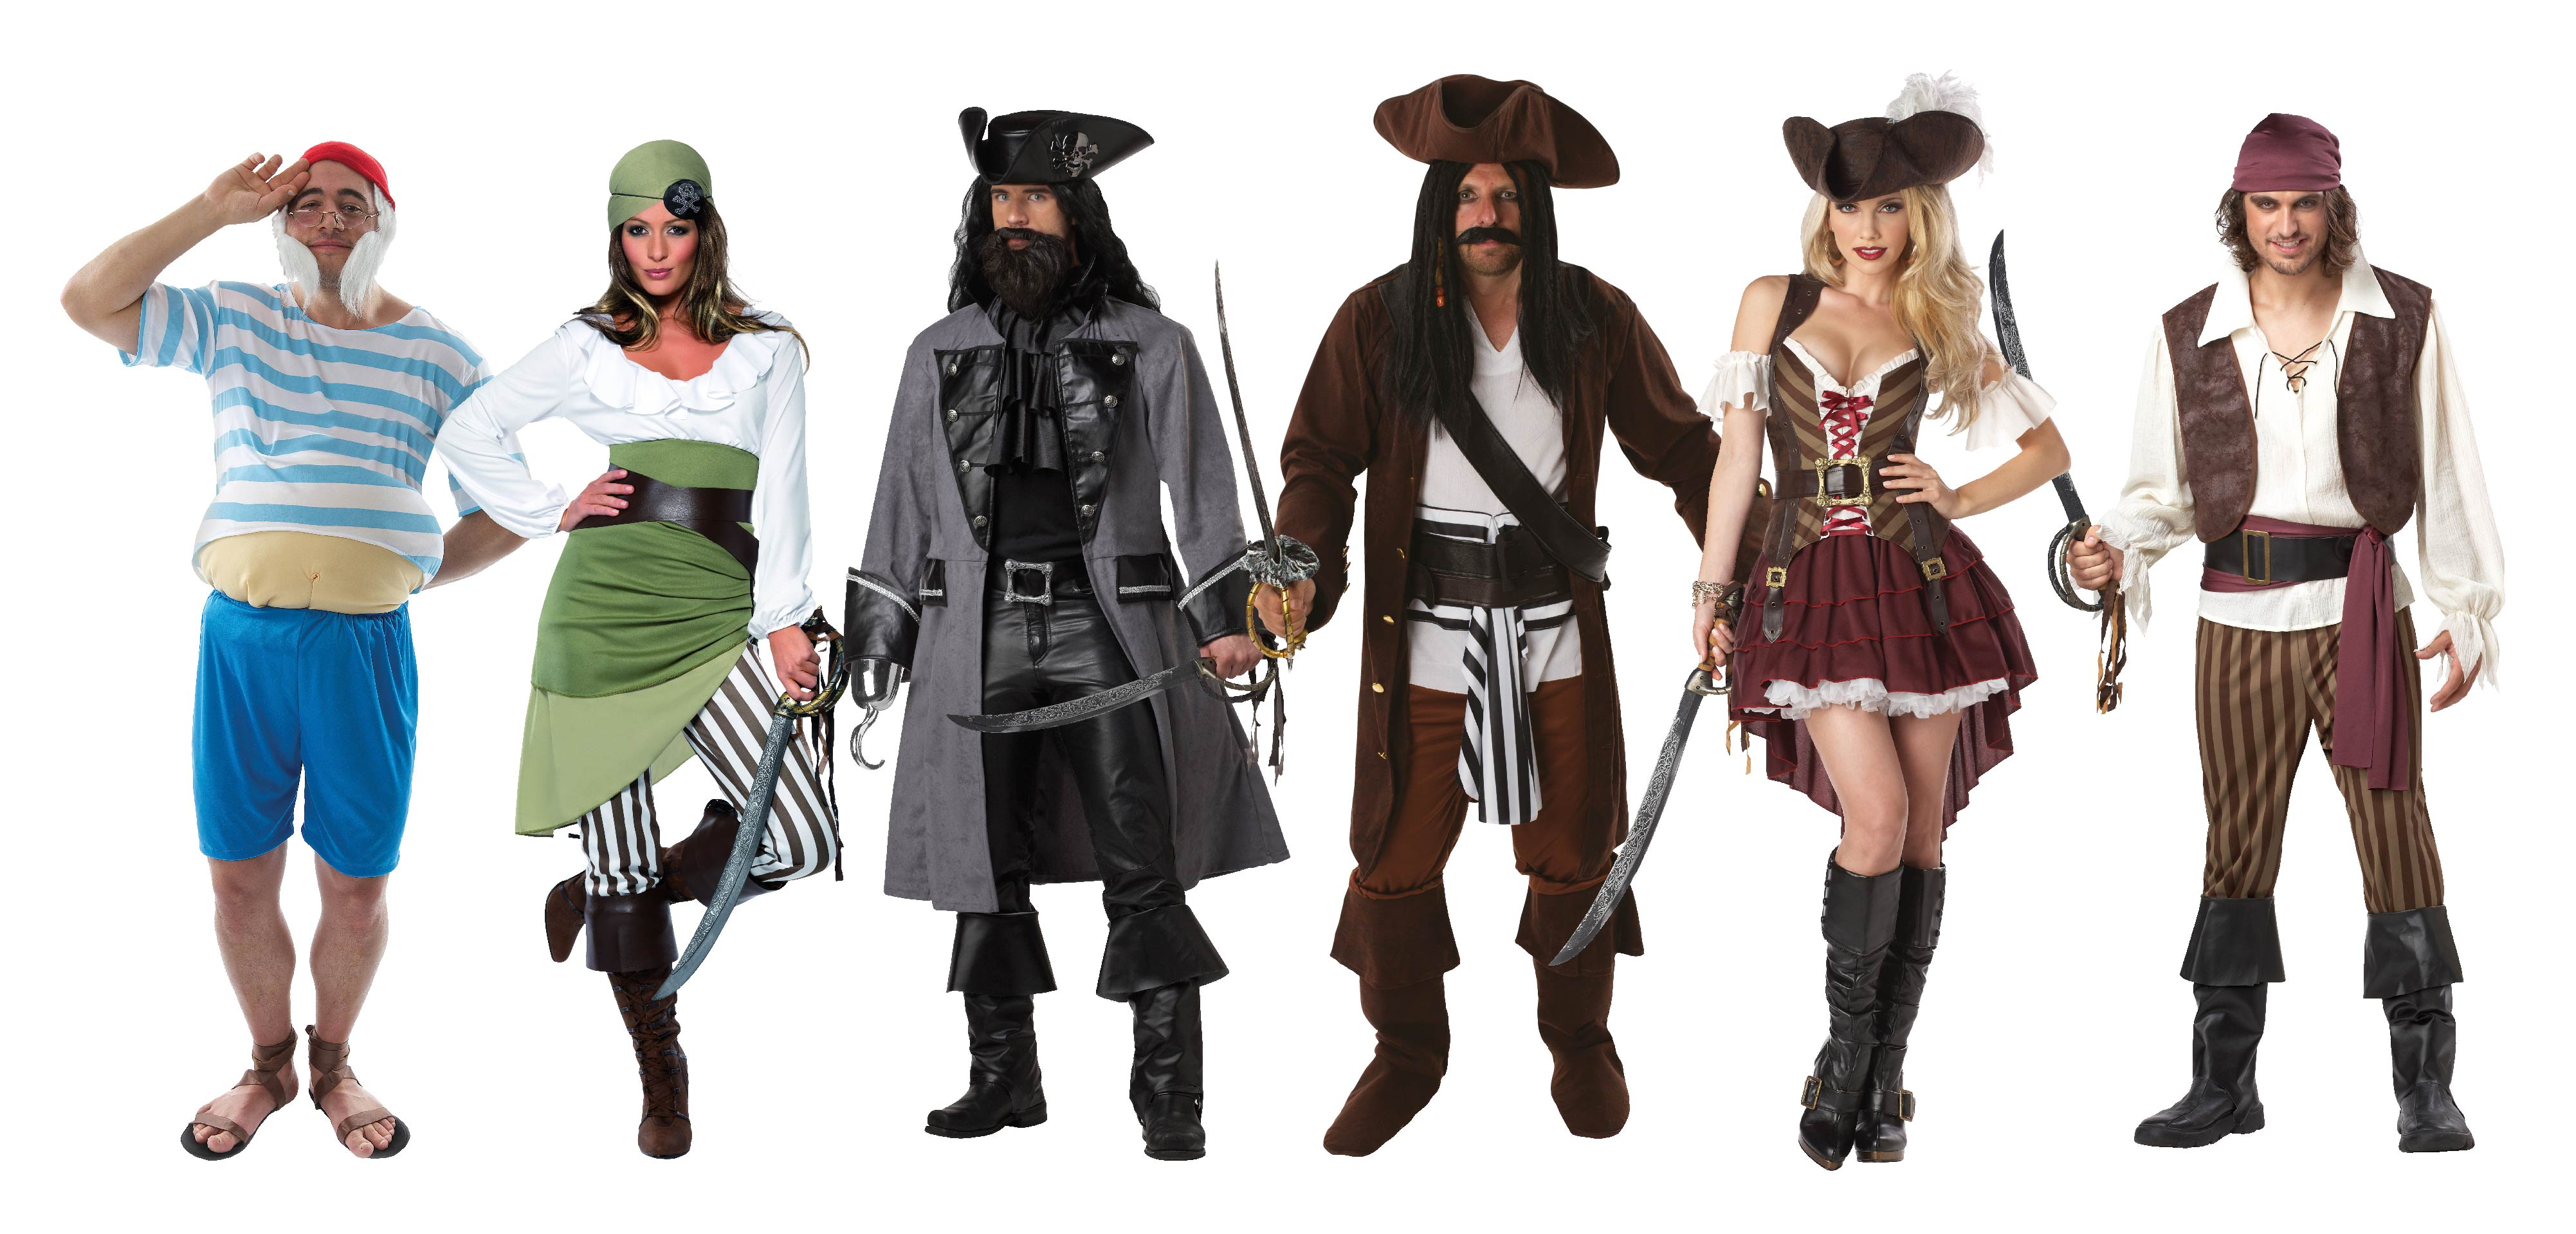 Group of people wearing Pirate costumes.